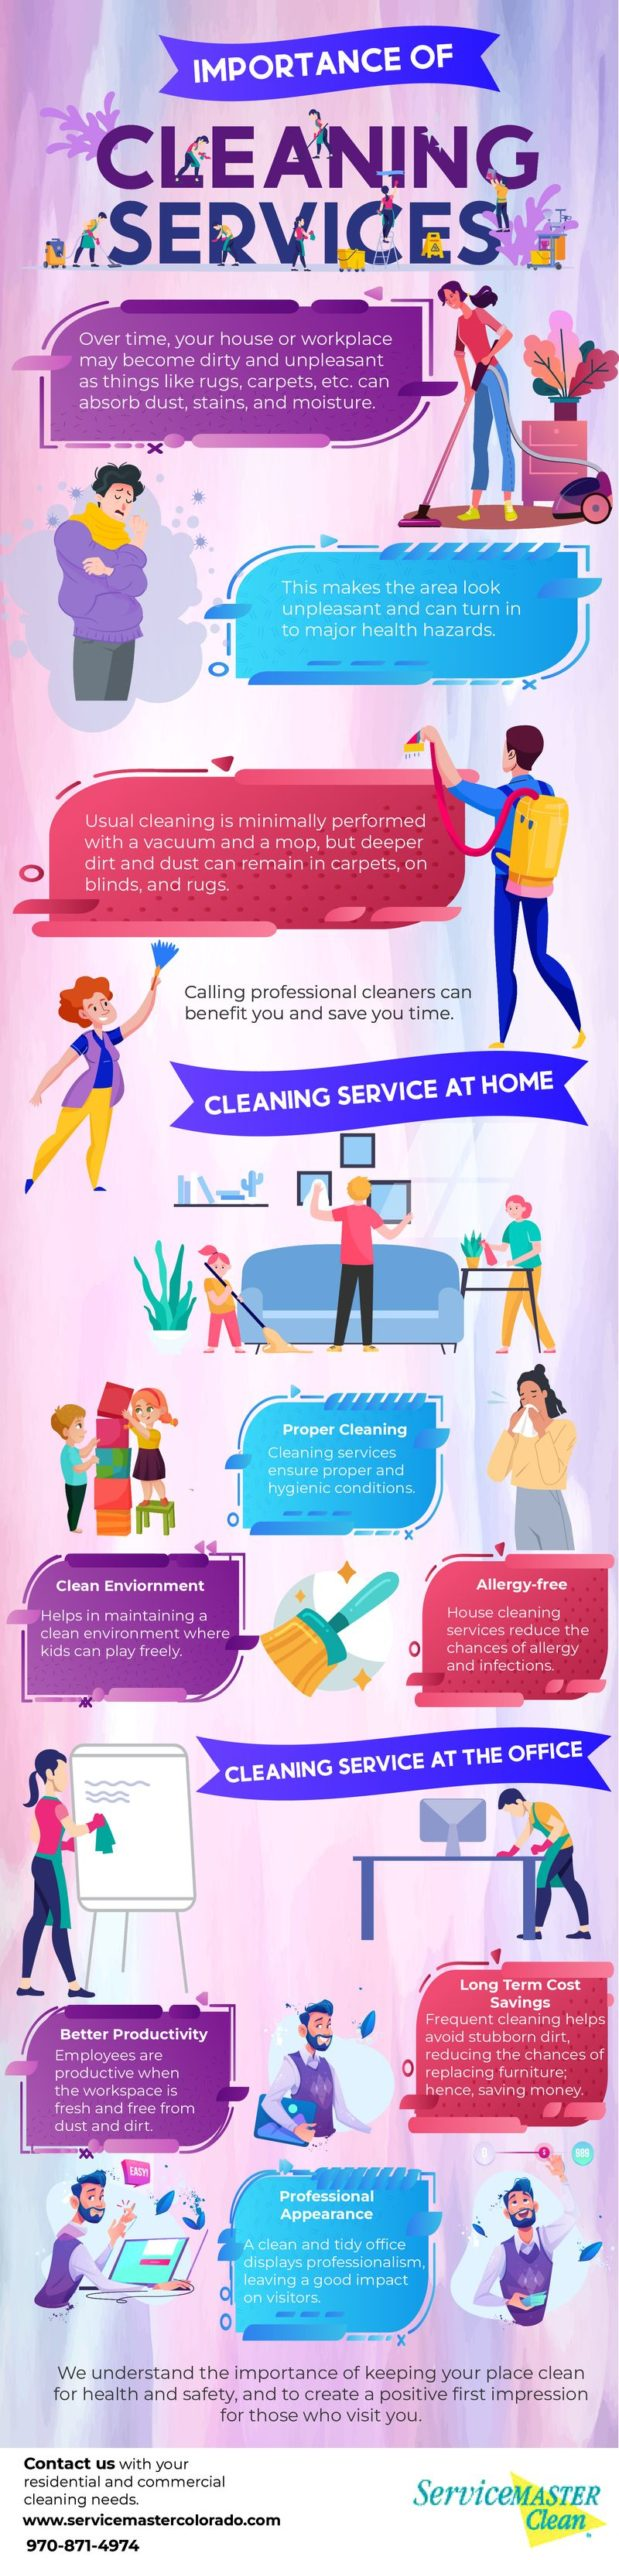 Importance Of Cleaning Services